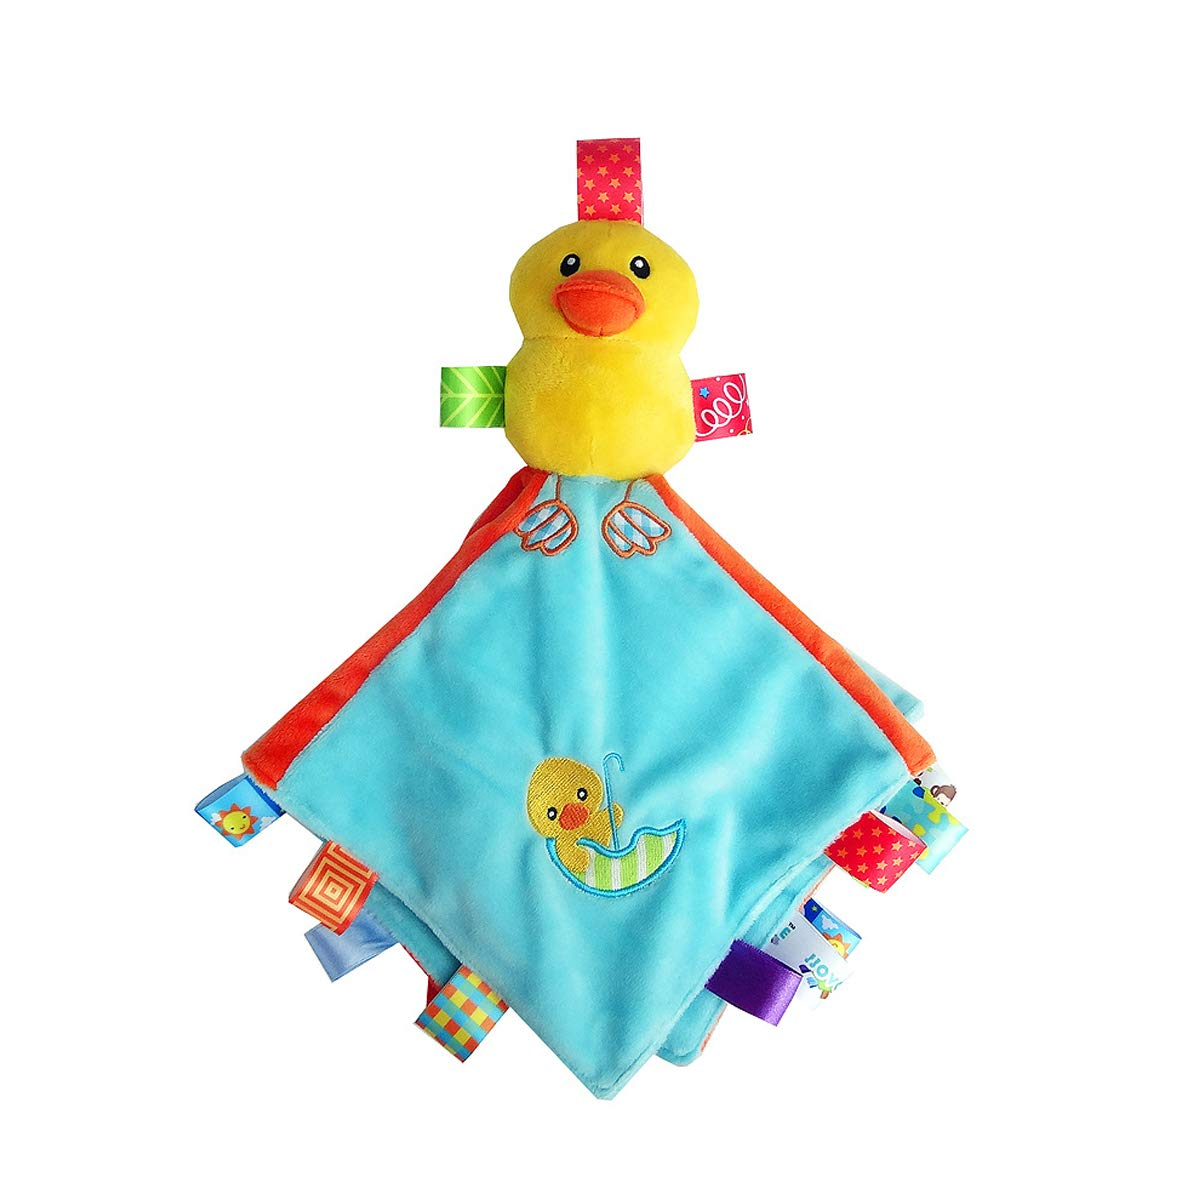 Duck Tag Blanket Toy for Baby Plush Yellow Duck Comforter Blanket,Super Soft Kids Taggy Security Blanket Best Gift For Newborn Toddler